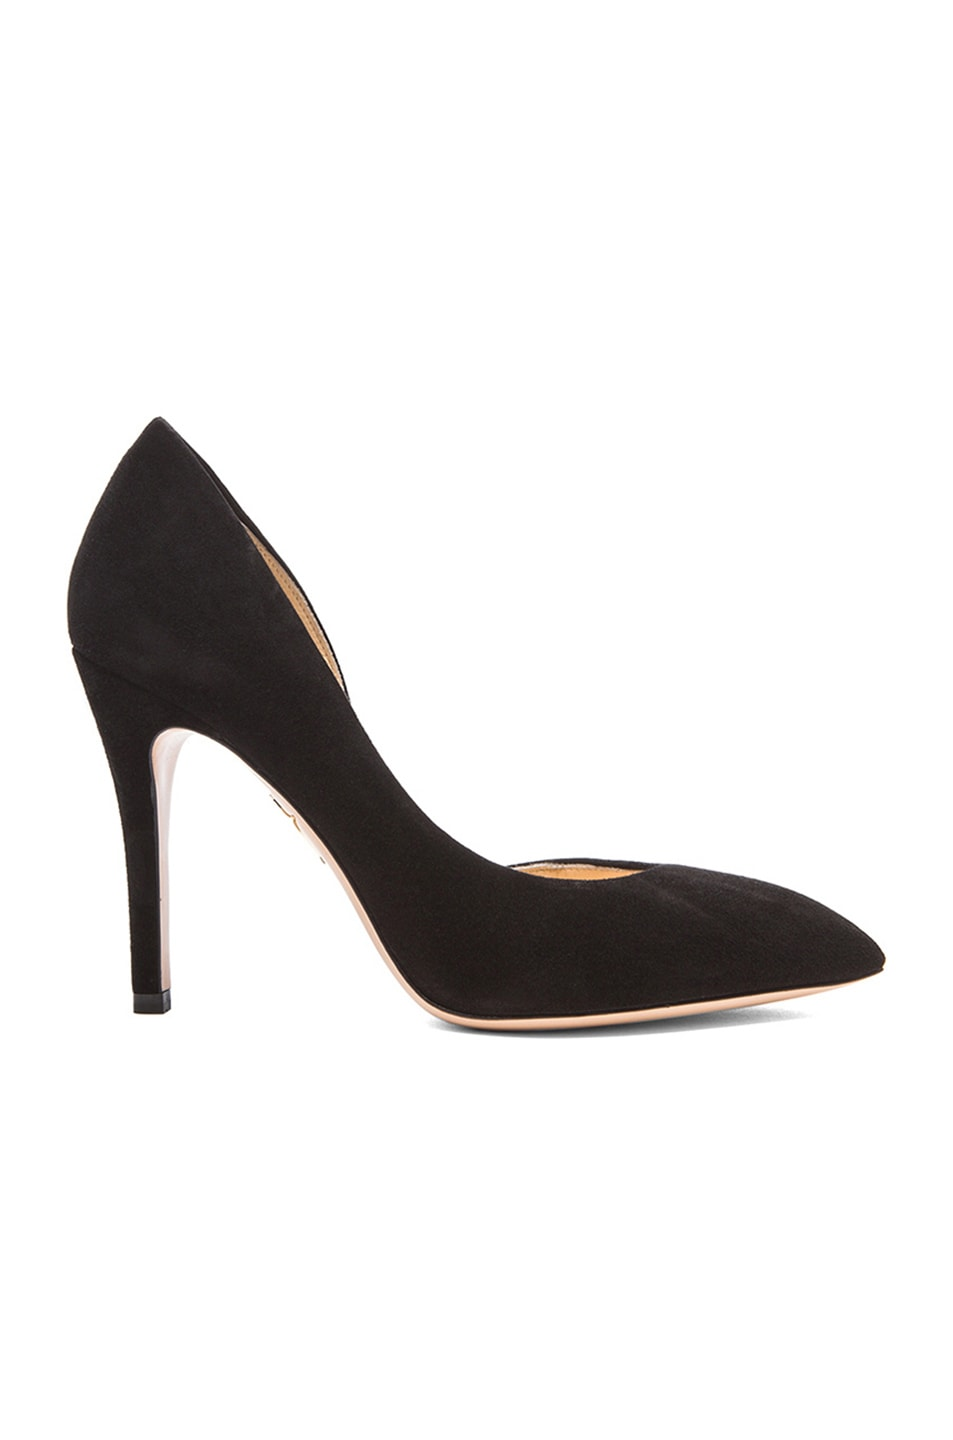 Image 1 of Charlotte Olympia The Lady is a Vamp Suede Heels in Black